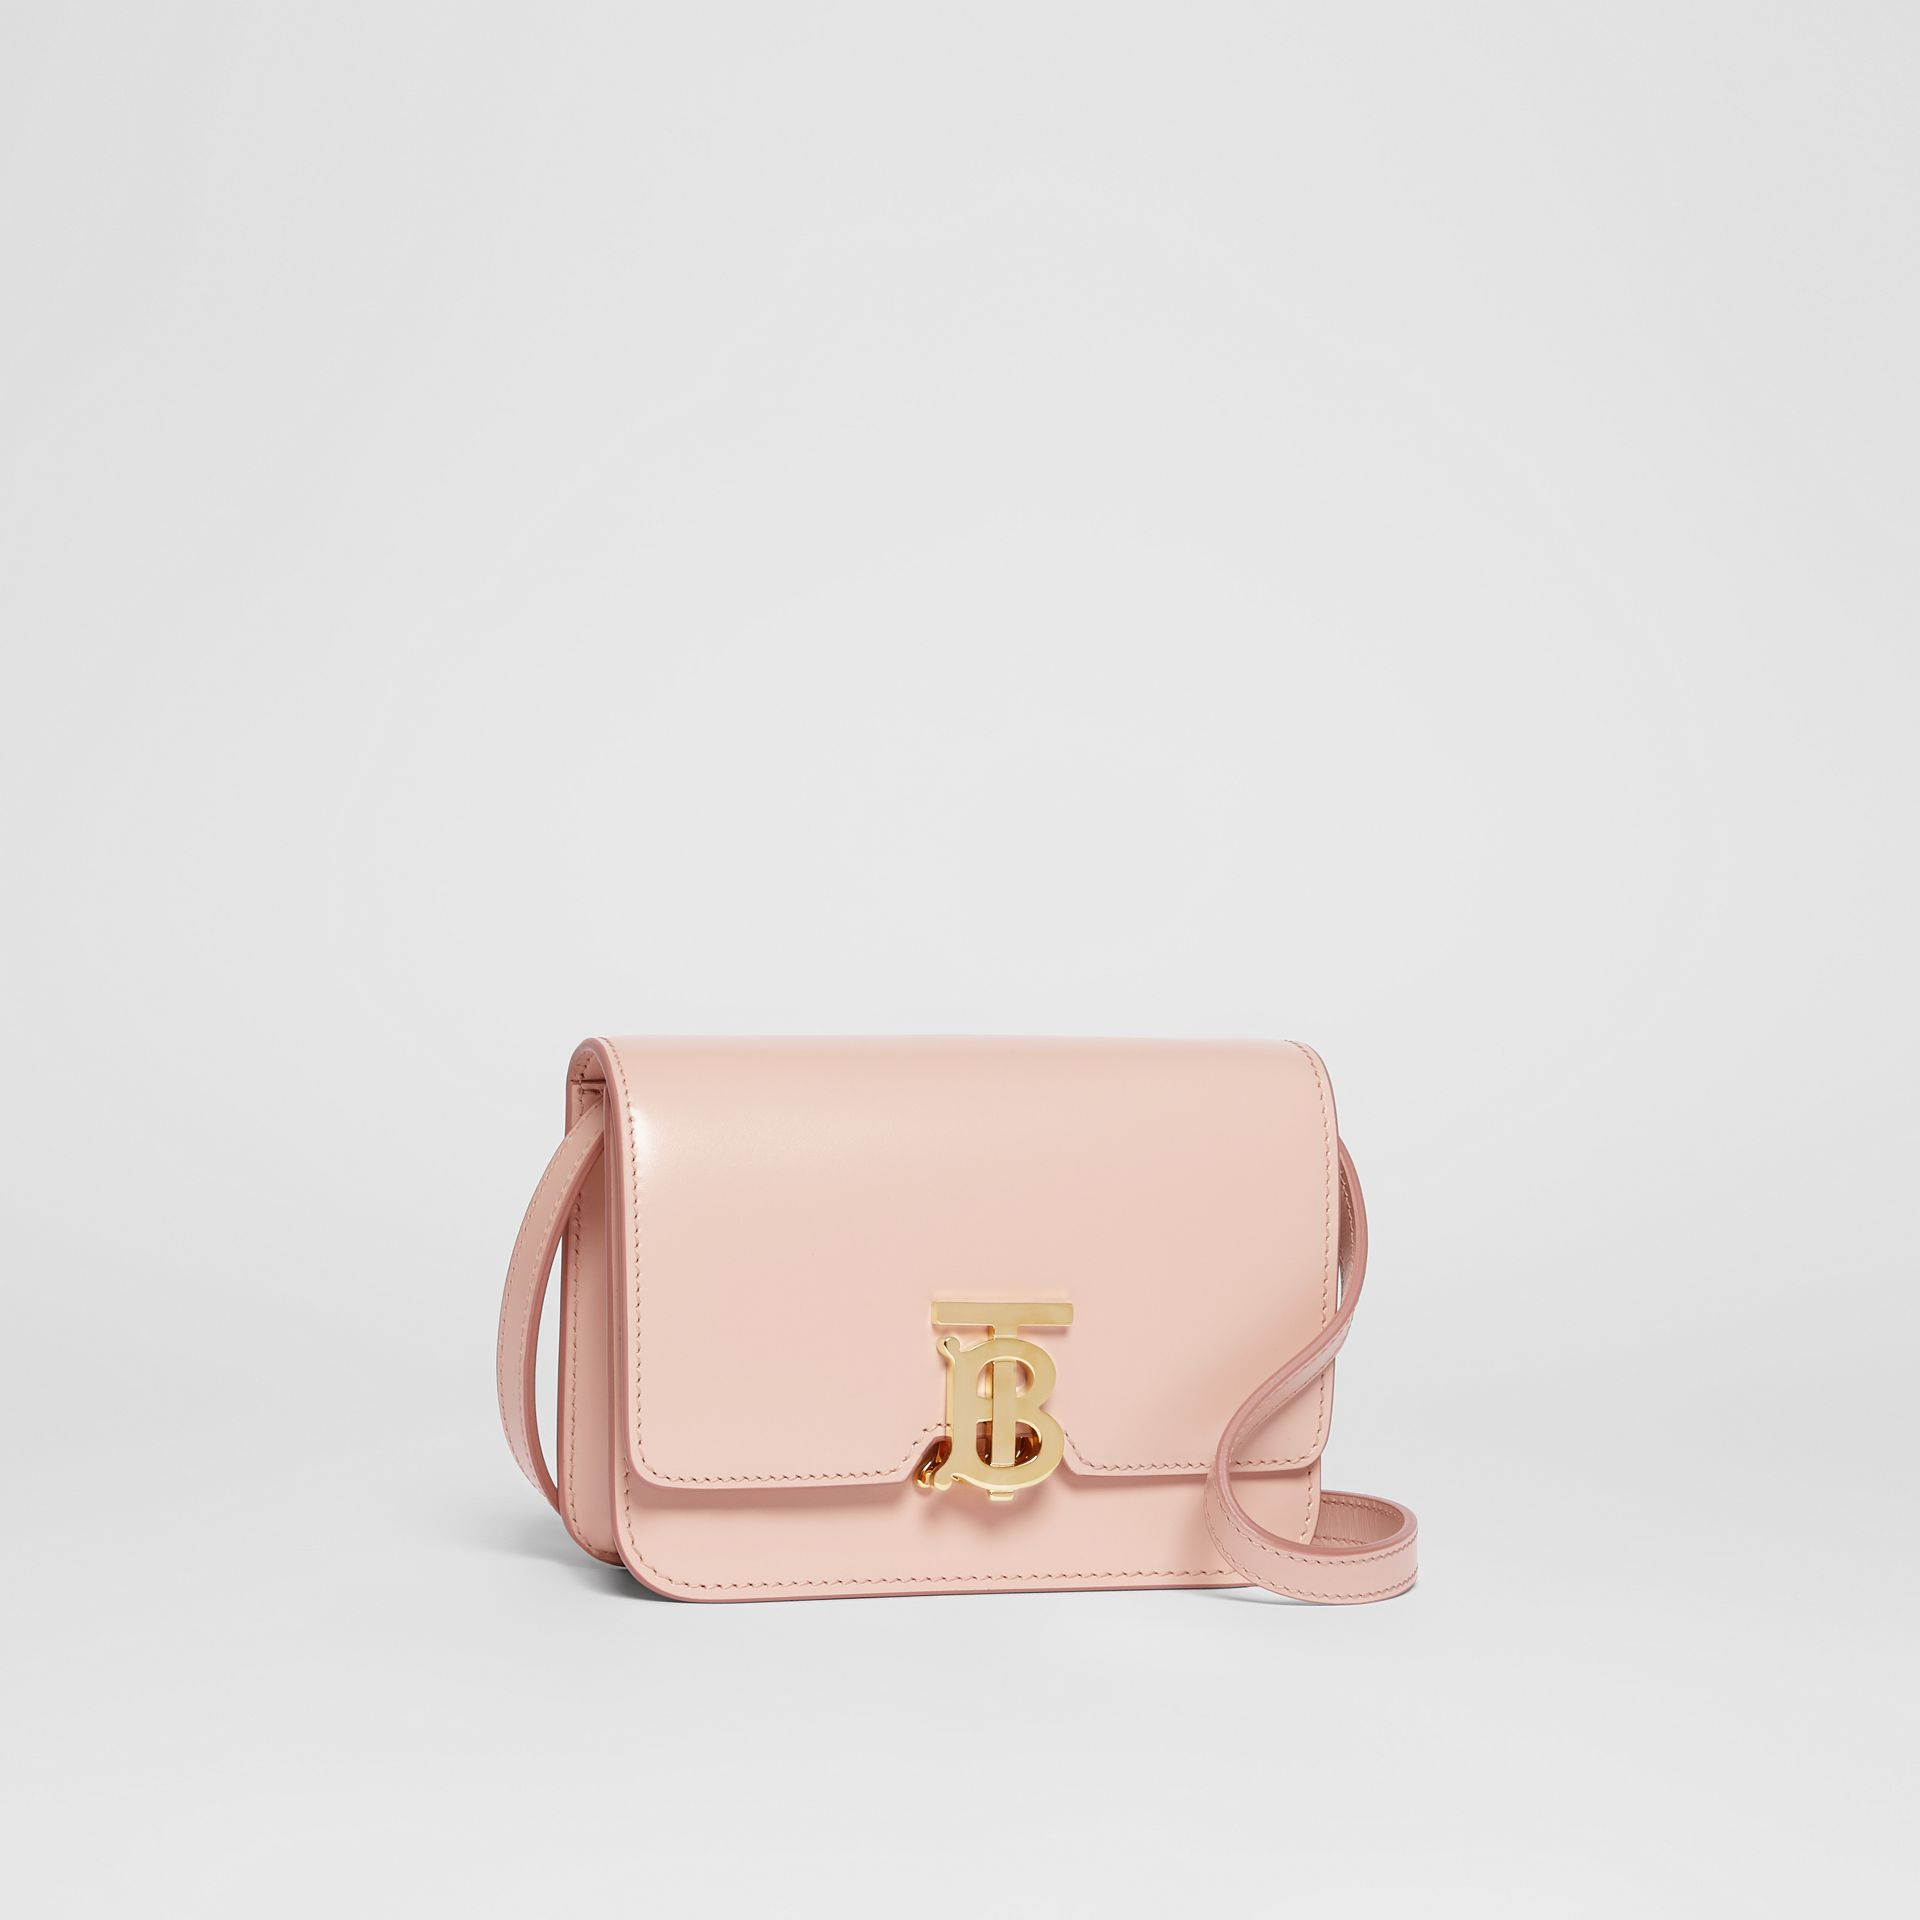 Mini Leather TB Bag in Rose Beige - Women | Burberry United States - gallery image 6